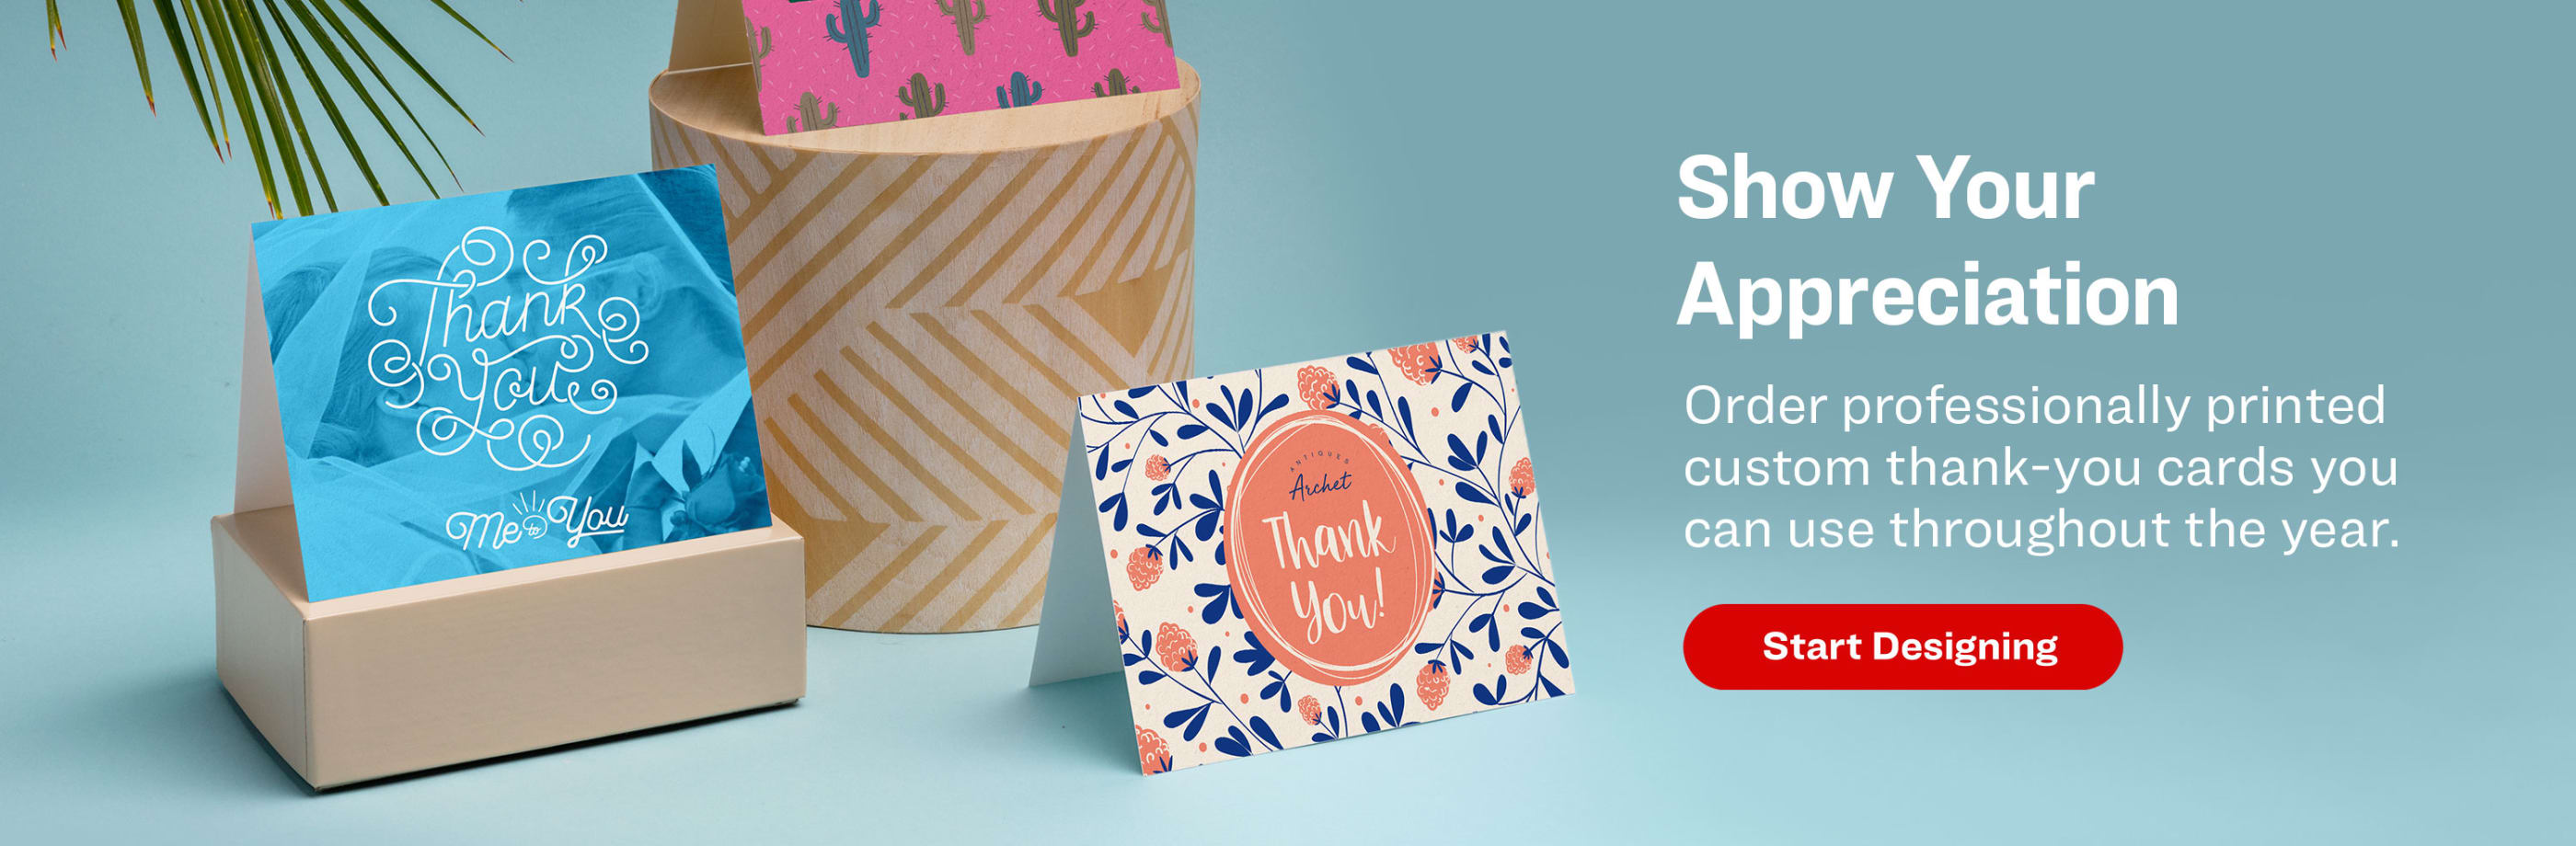 Show Your Appreciation. Order professionally printed Thank-You cards you can use throughout the year.